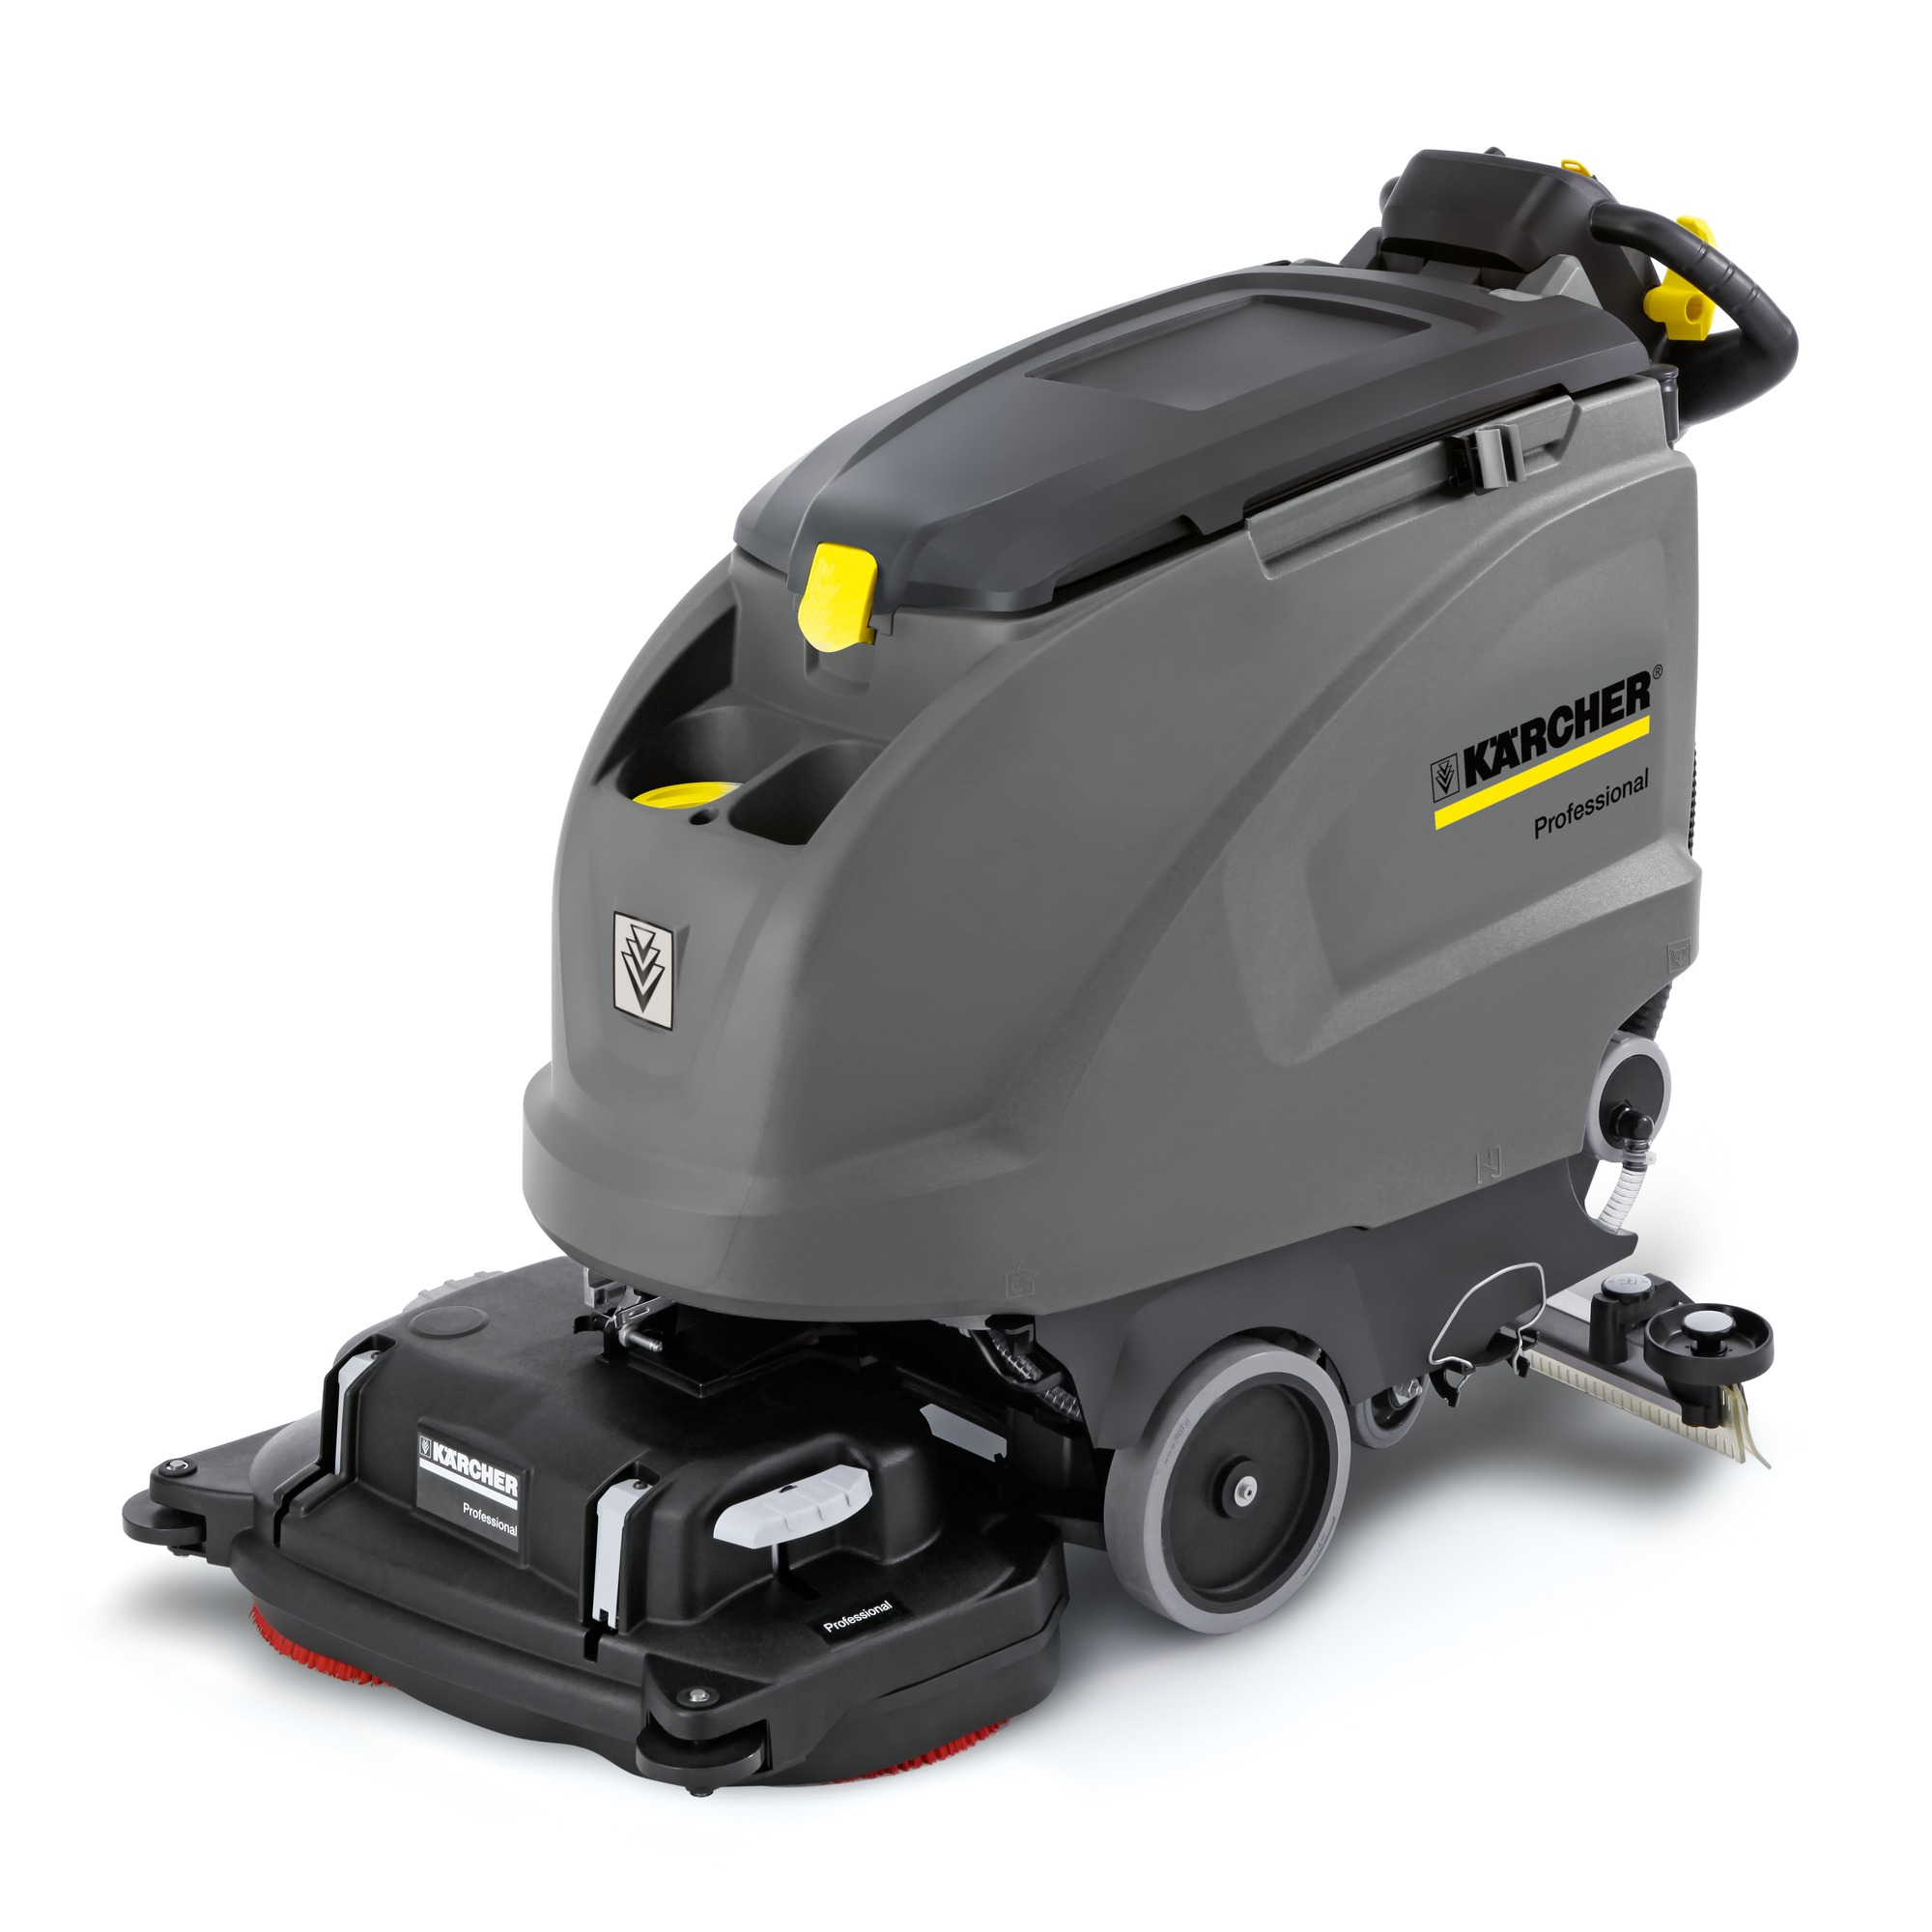 B 60 W BP 2.384-002.0 KARCHER - KARCHER PREMIER CENTER